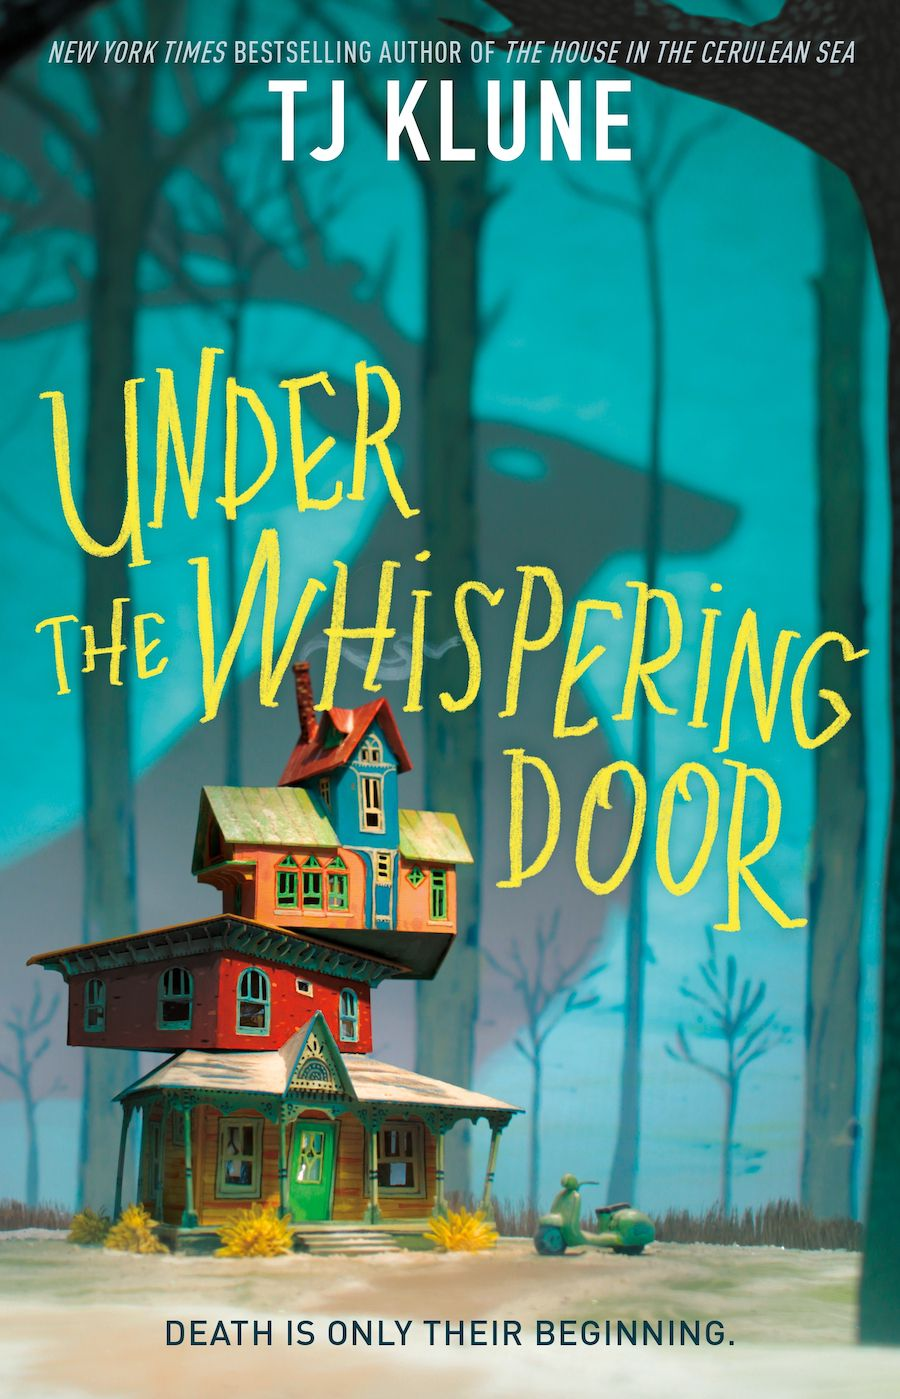 cover image of Under the Whispering Door by TJ Klune